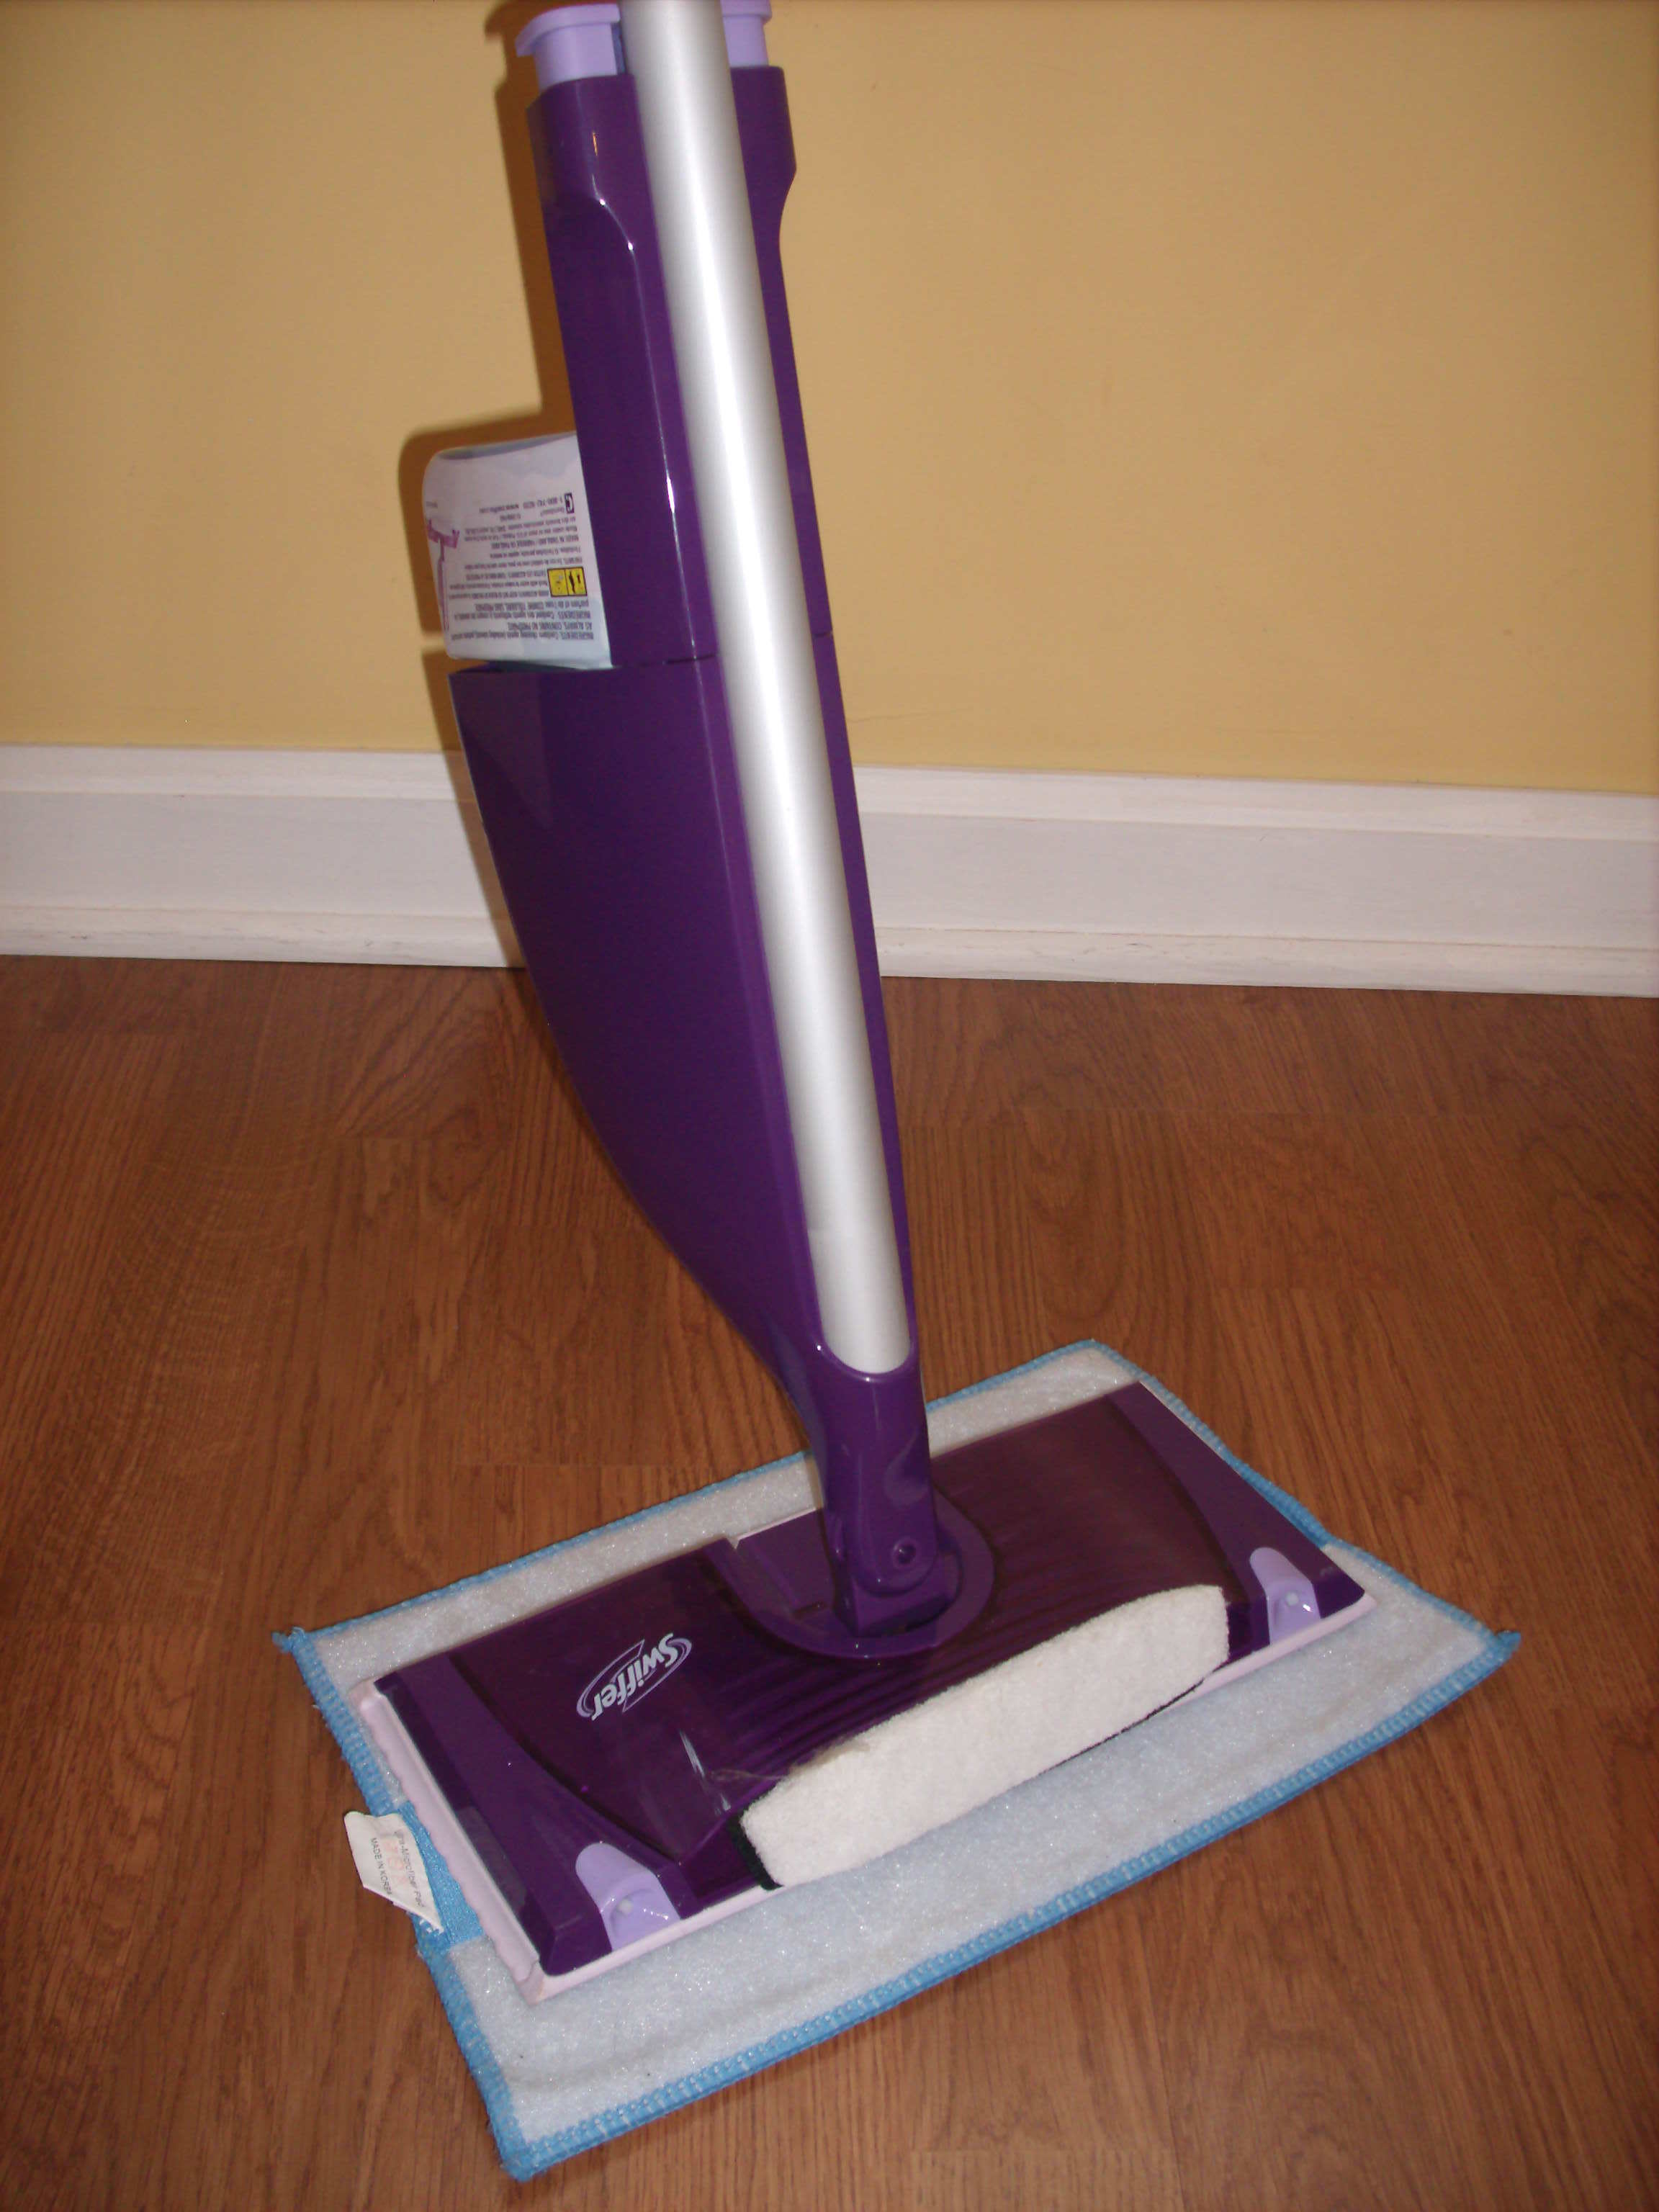 Swiffer Wetjet Reviews In Household Cleaning Products